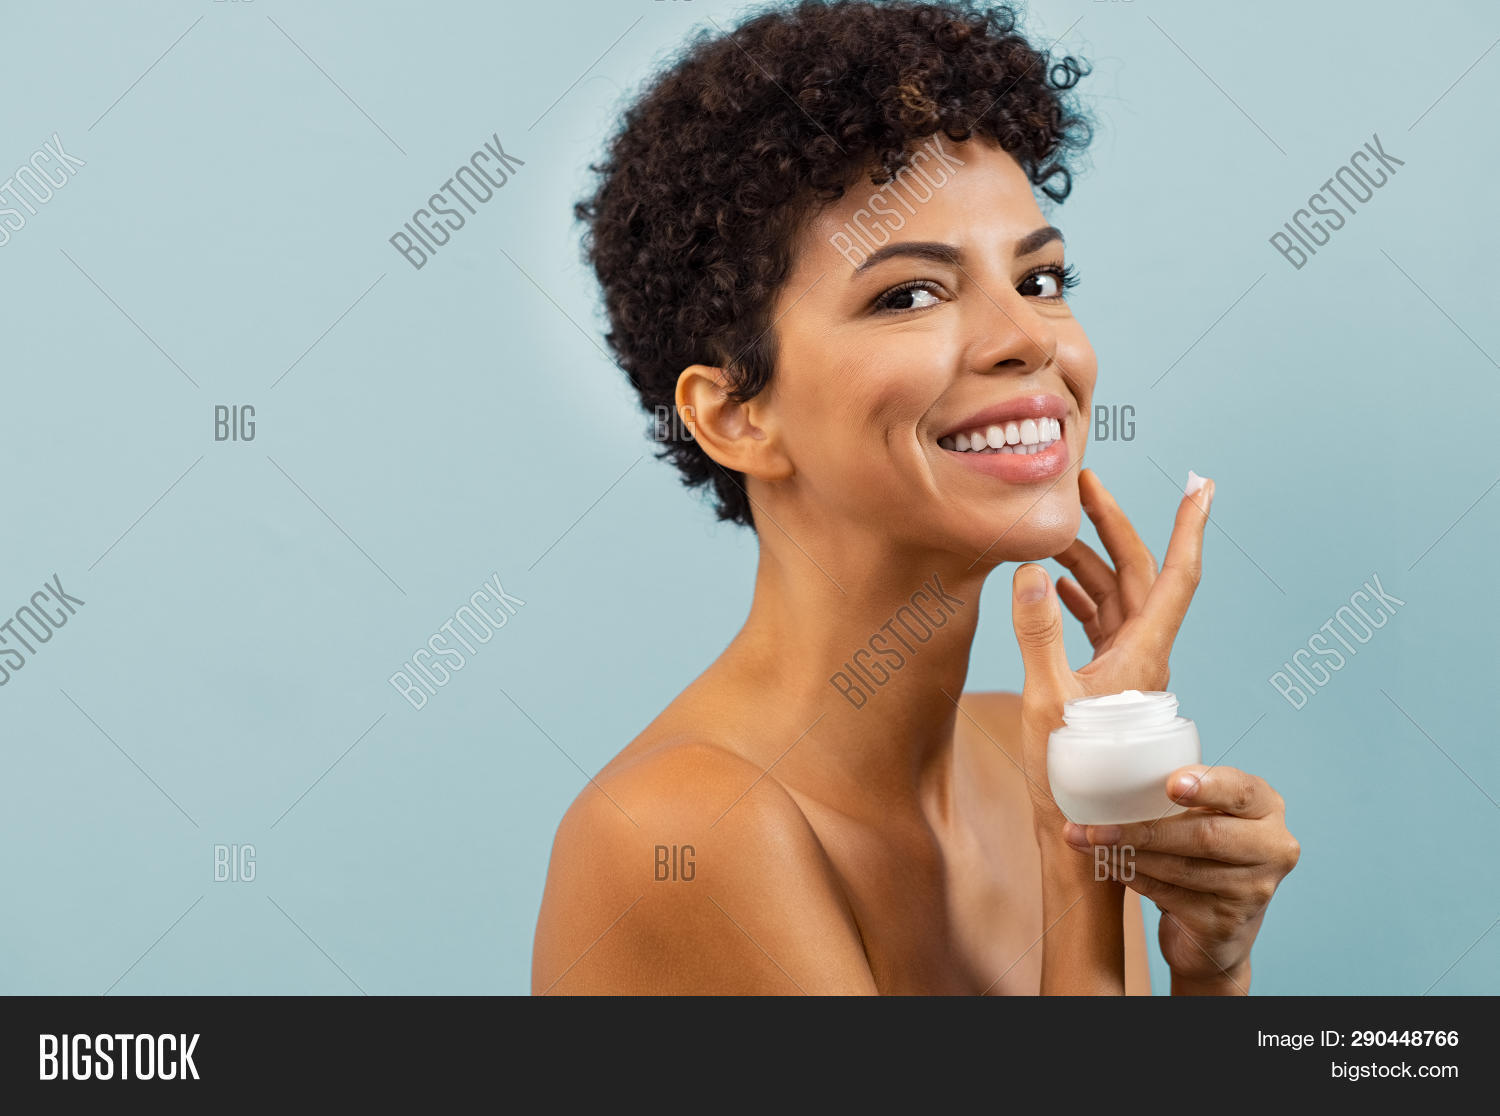 african,african american,african woman,afro,american,apply,applying,attractive,background,beautiful,beauty,beauty woman,black,brazilian,care,clean,collagen,complexion,copy space,cosmetic,cosmetology,cream,cream face,curly hair,dermatology,face,face moisturizer,facial,girl,hand,happy,healthy,holding,isolated,looking,looking at camera,lotion,moisture,moisturizer,moisturizing,naked,natural,natural beauty,people,purity,skin,skincare,smiling,treatment,woman